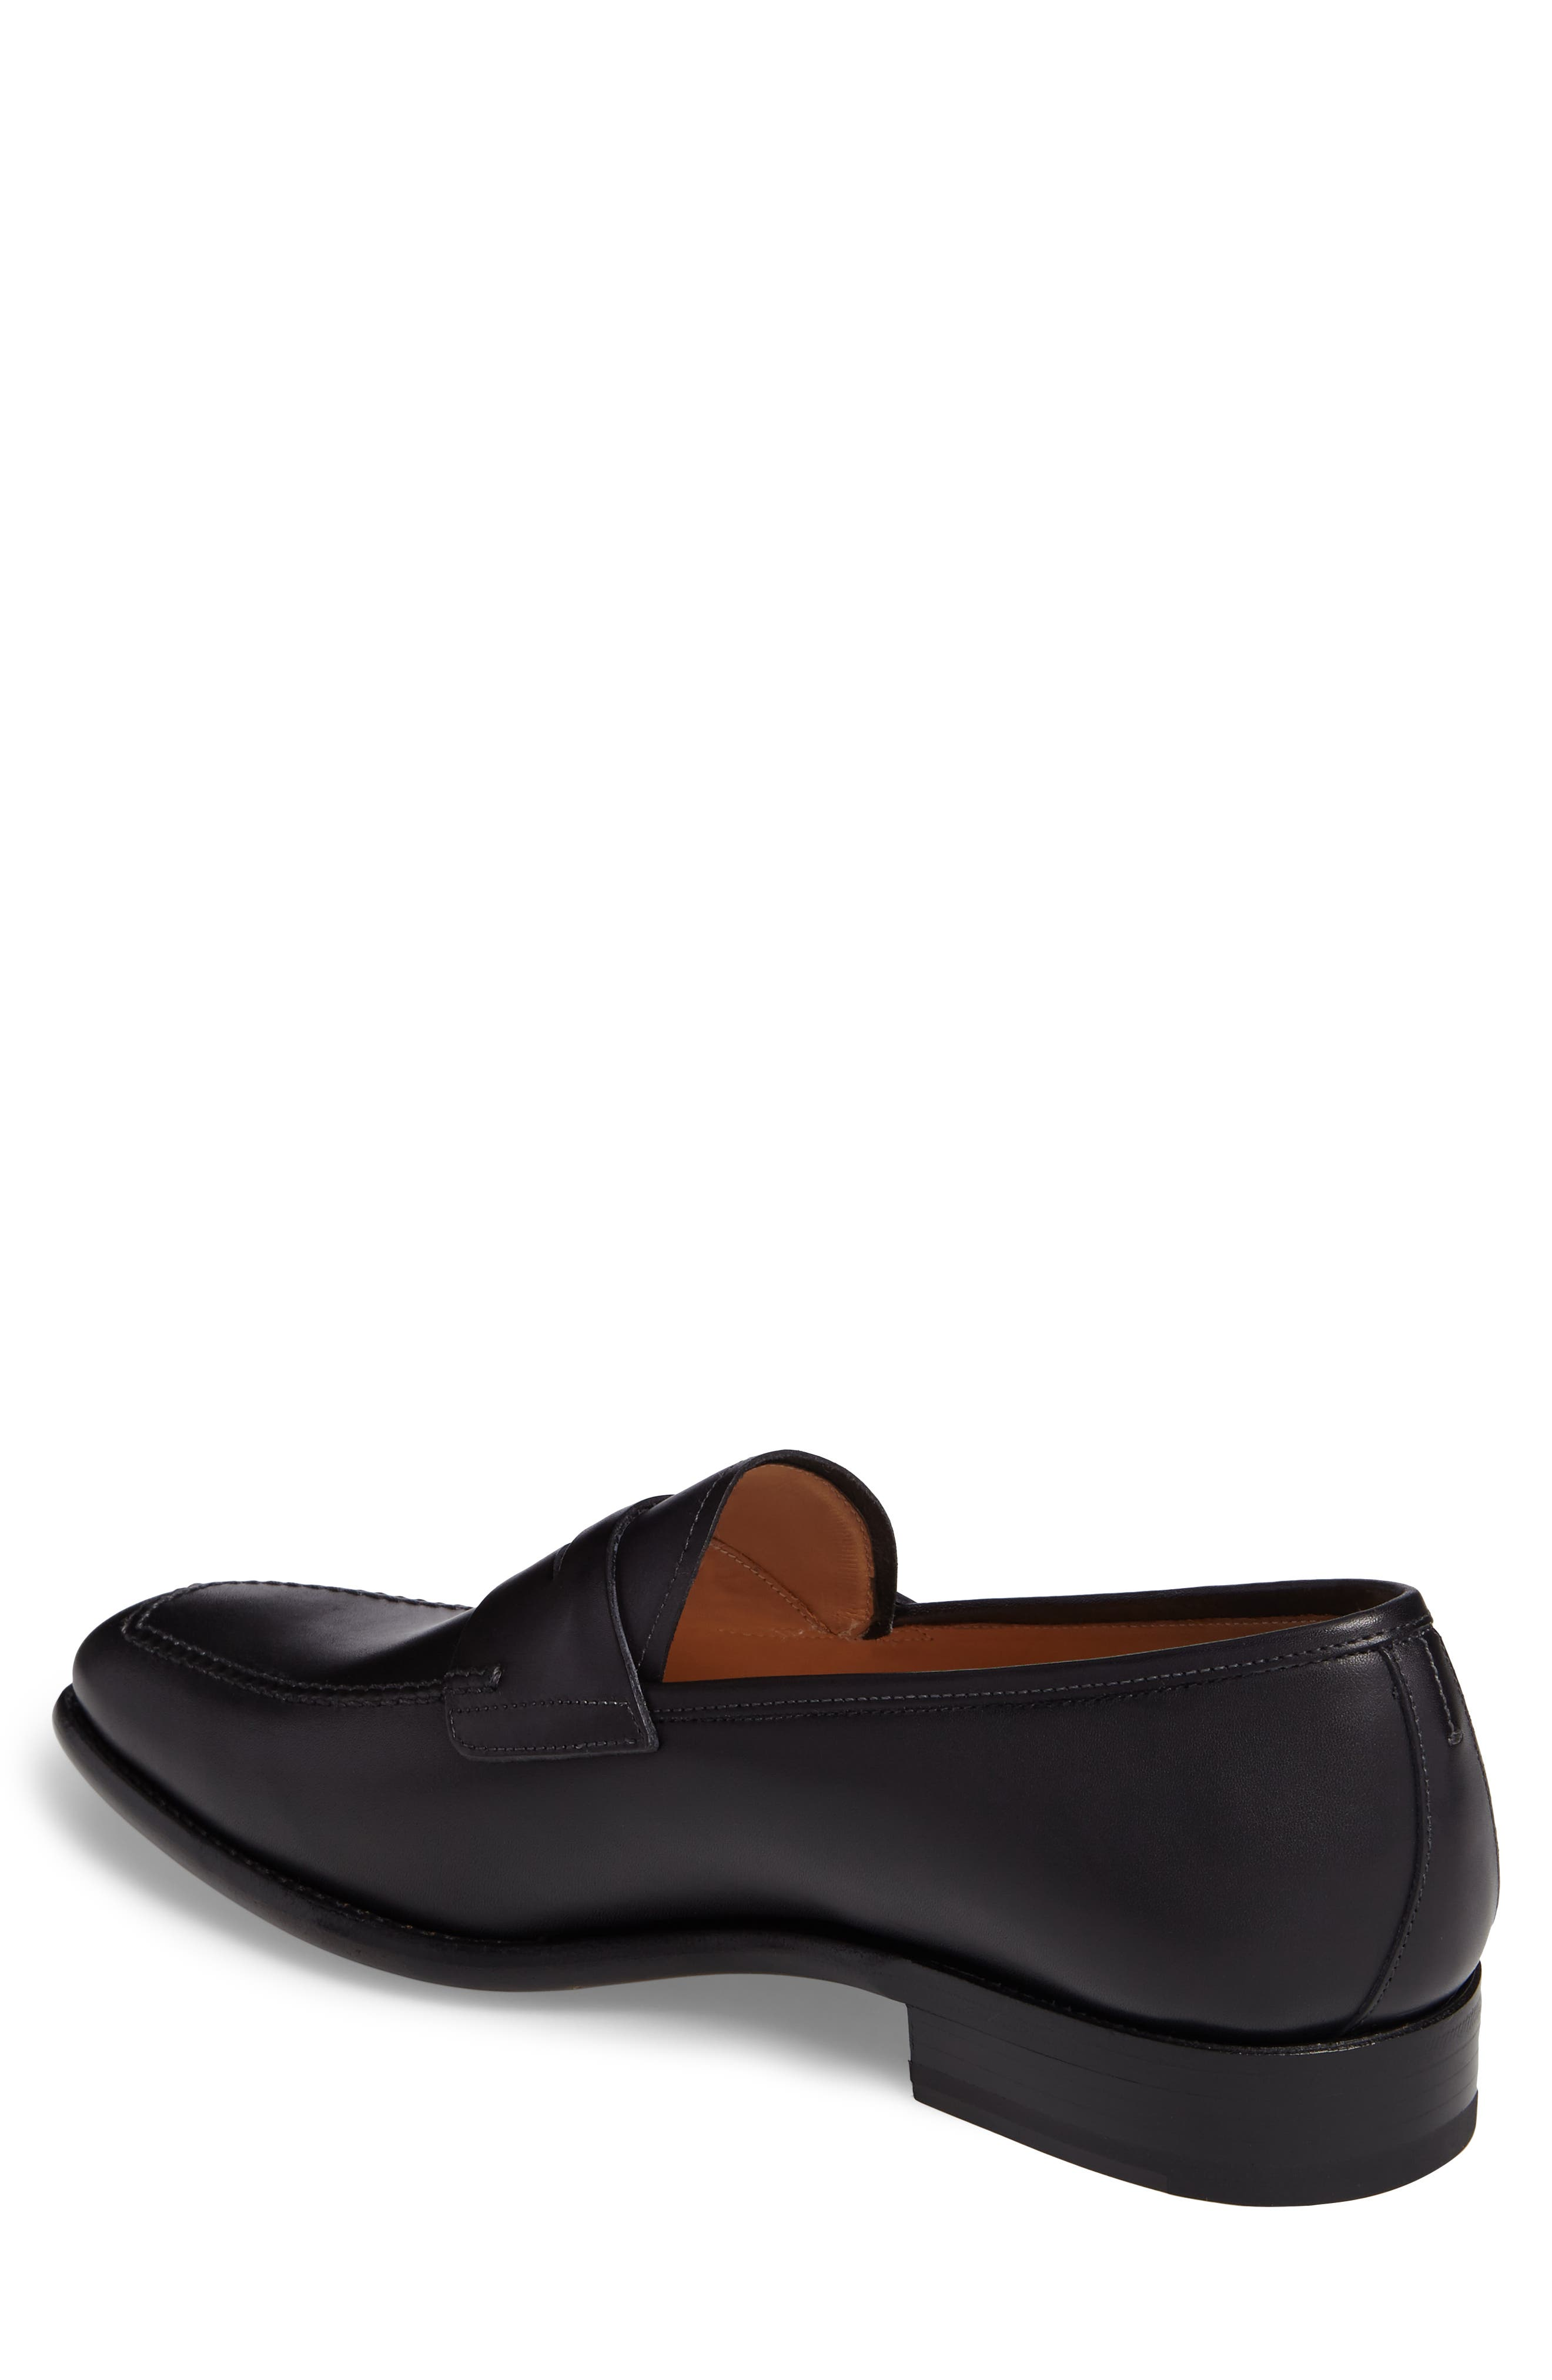 Claude Penny Loafer,                             Alternate thumbnail 2, color,                             008